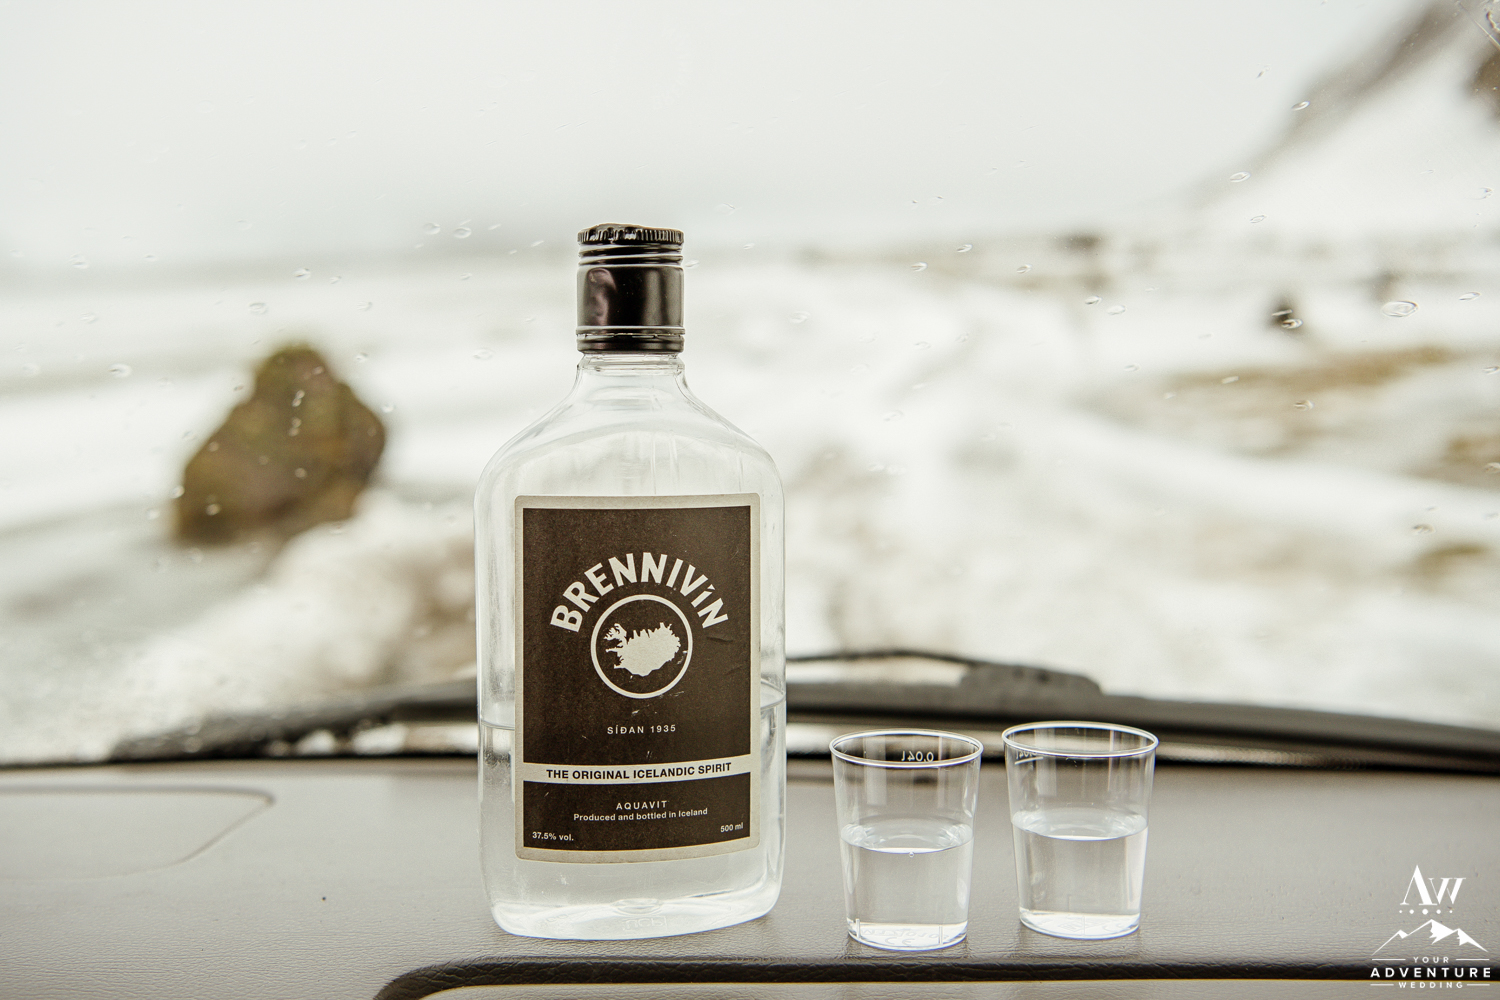 Icelandic Brennivín Shots on Dash of Super Jeep